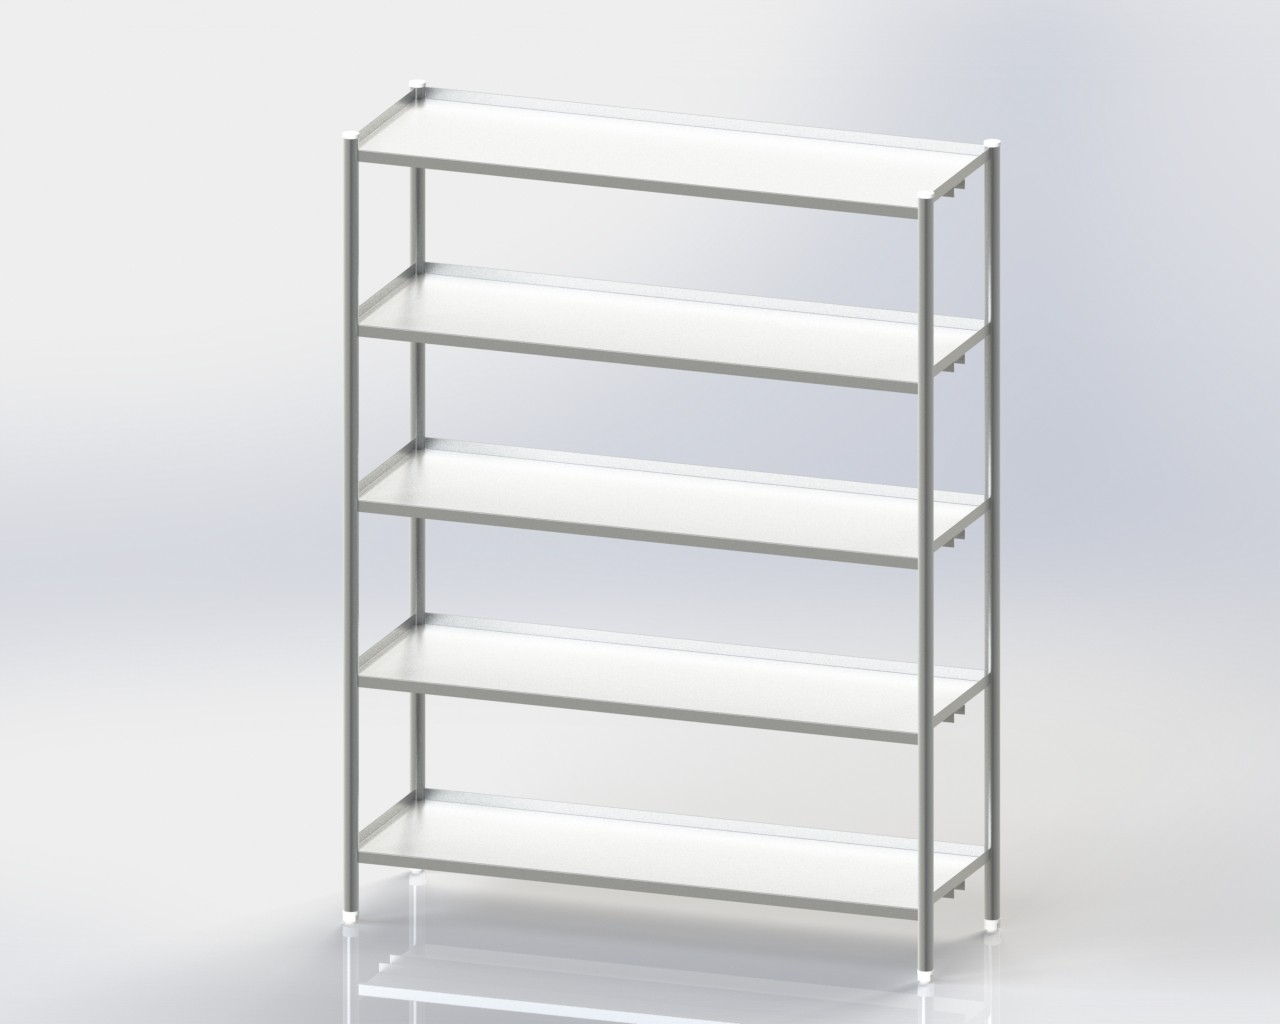 5 Shelves Storage Rack/standard